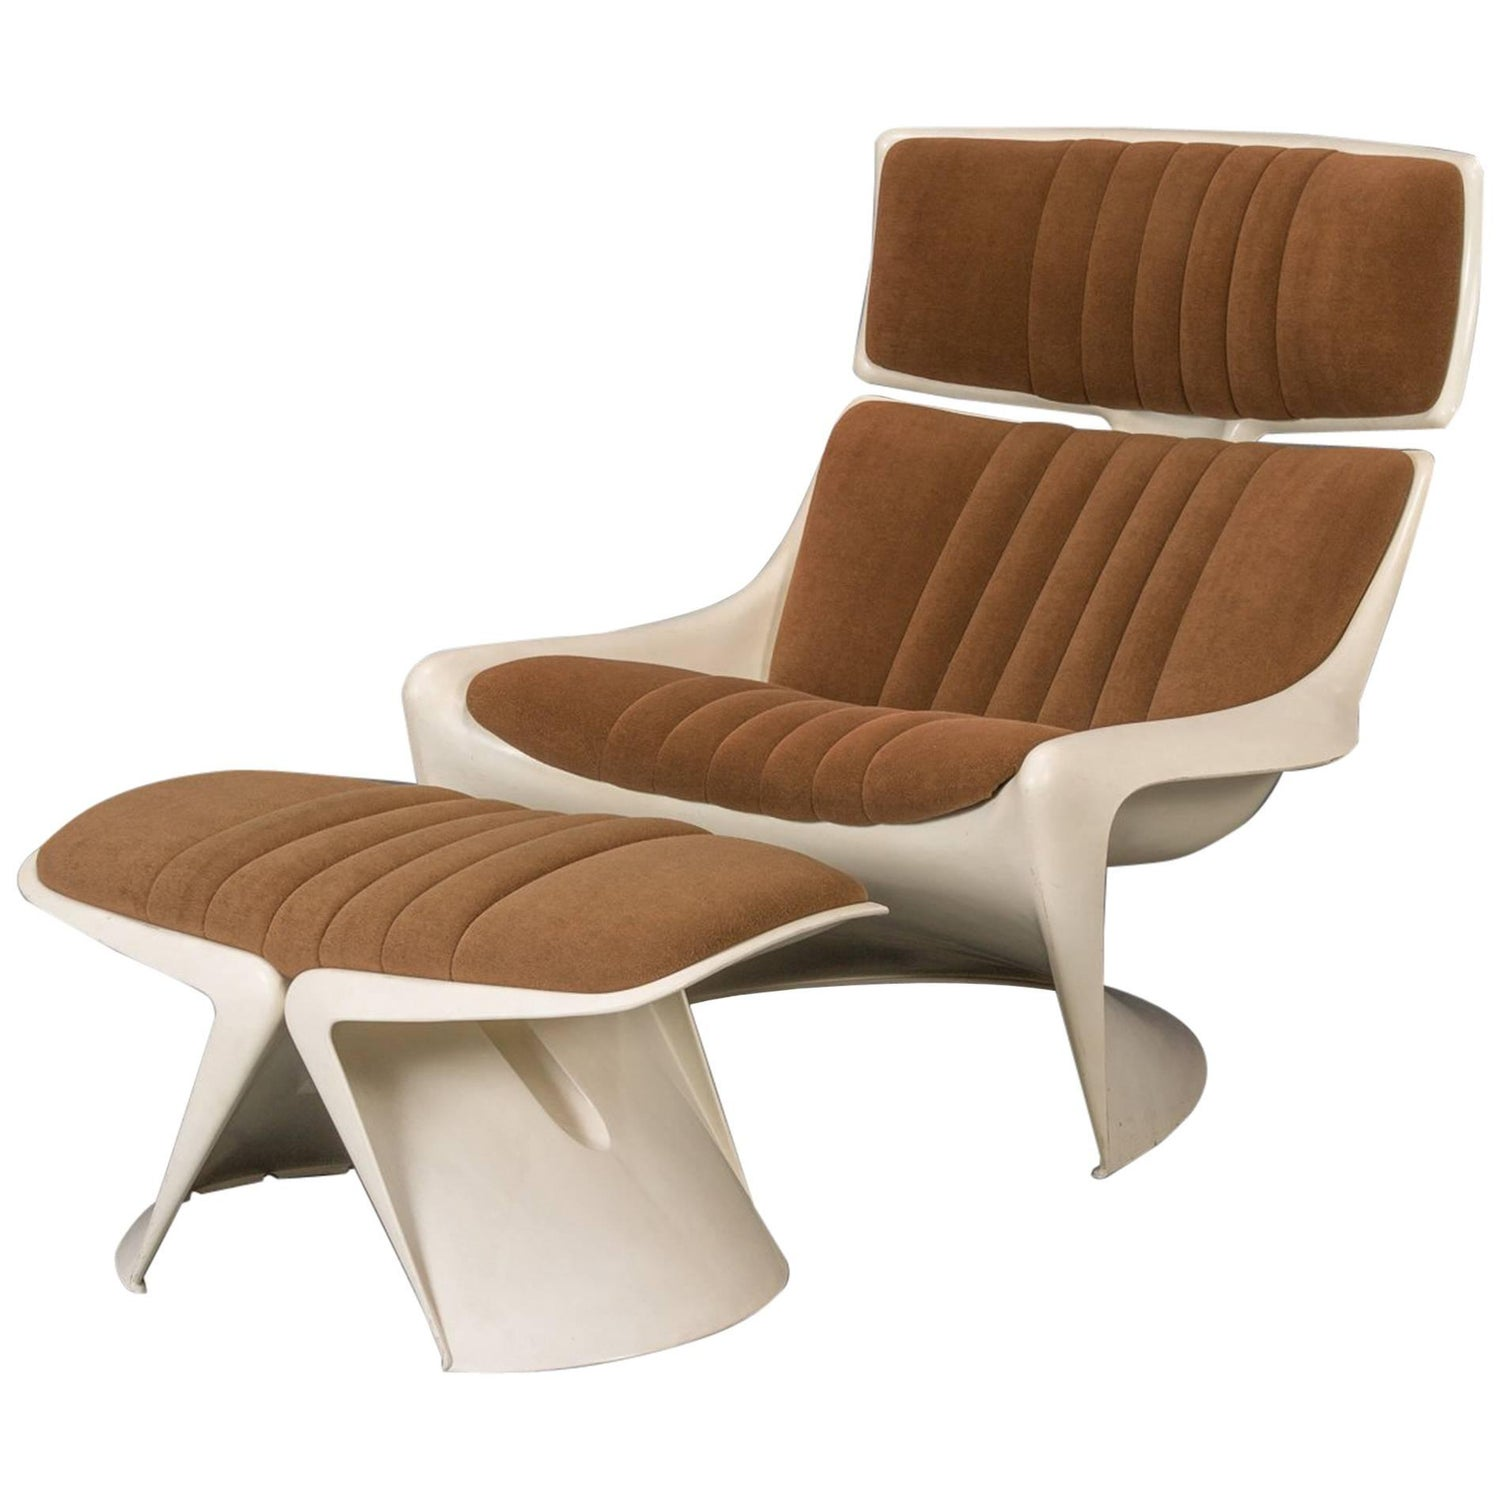 Cado Furniture: Chairs, Sofas, Tables & More - 61 For Sale at 1stdibs